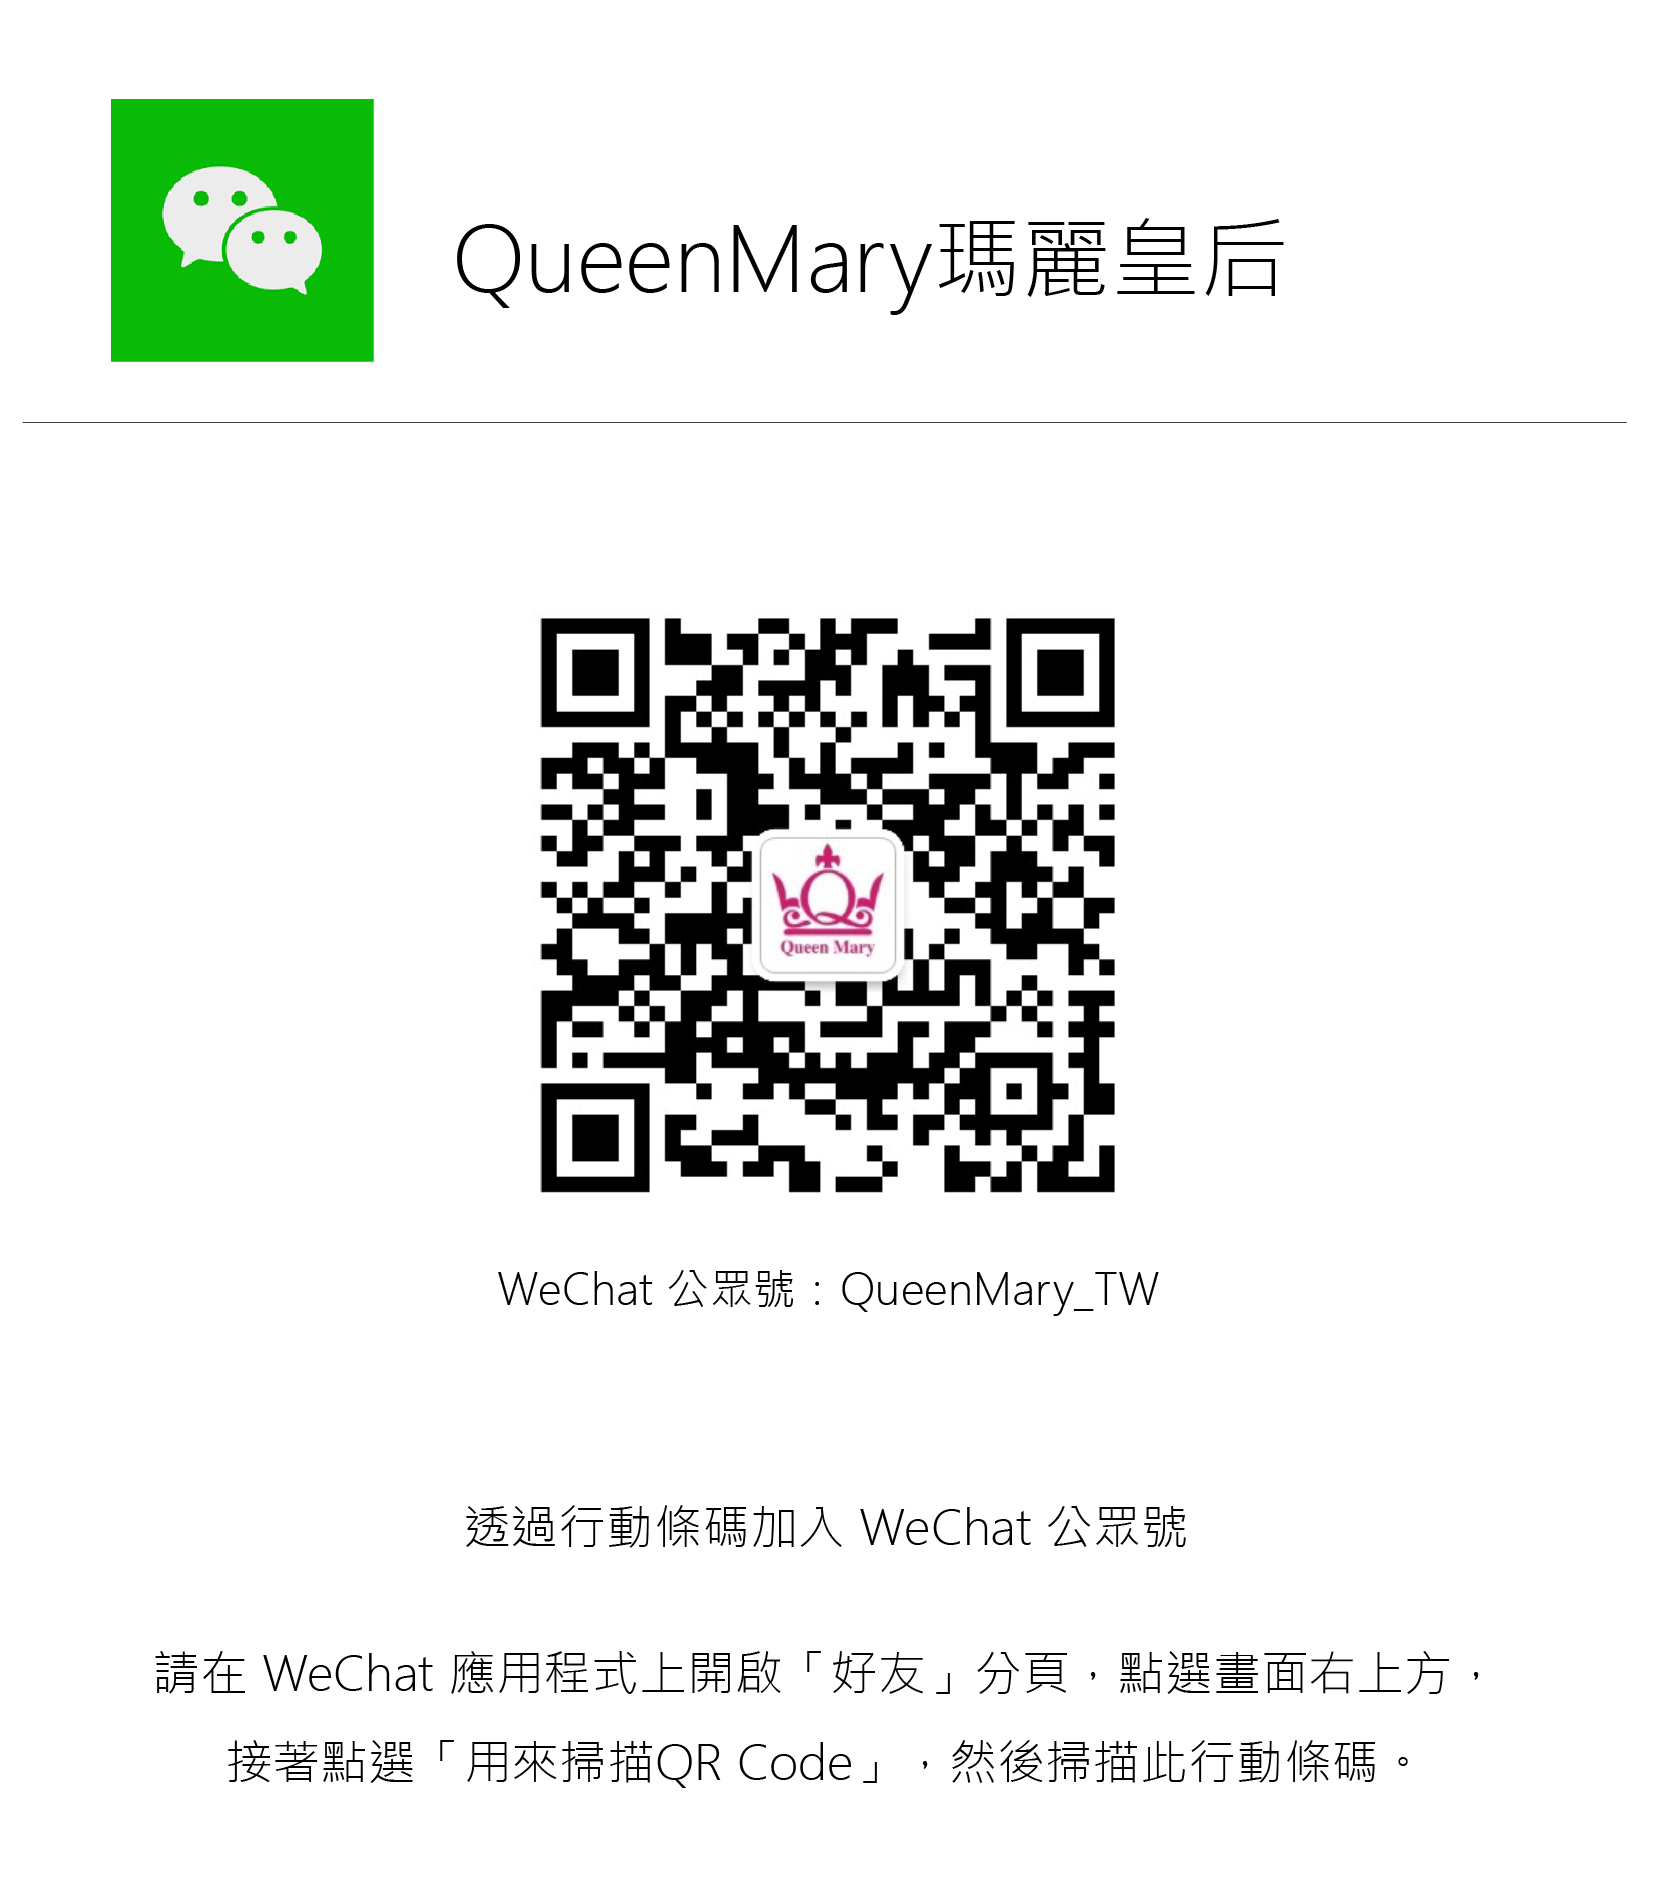 QueenMary瑪麗皇后_WeChat 公眾號:QueenMary_TW